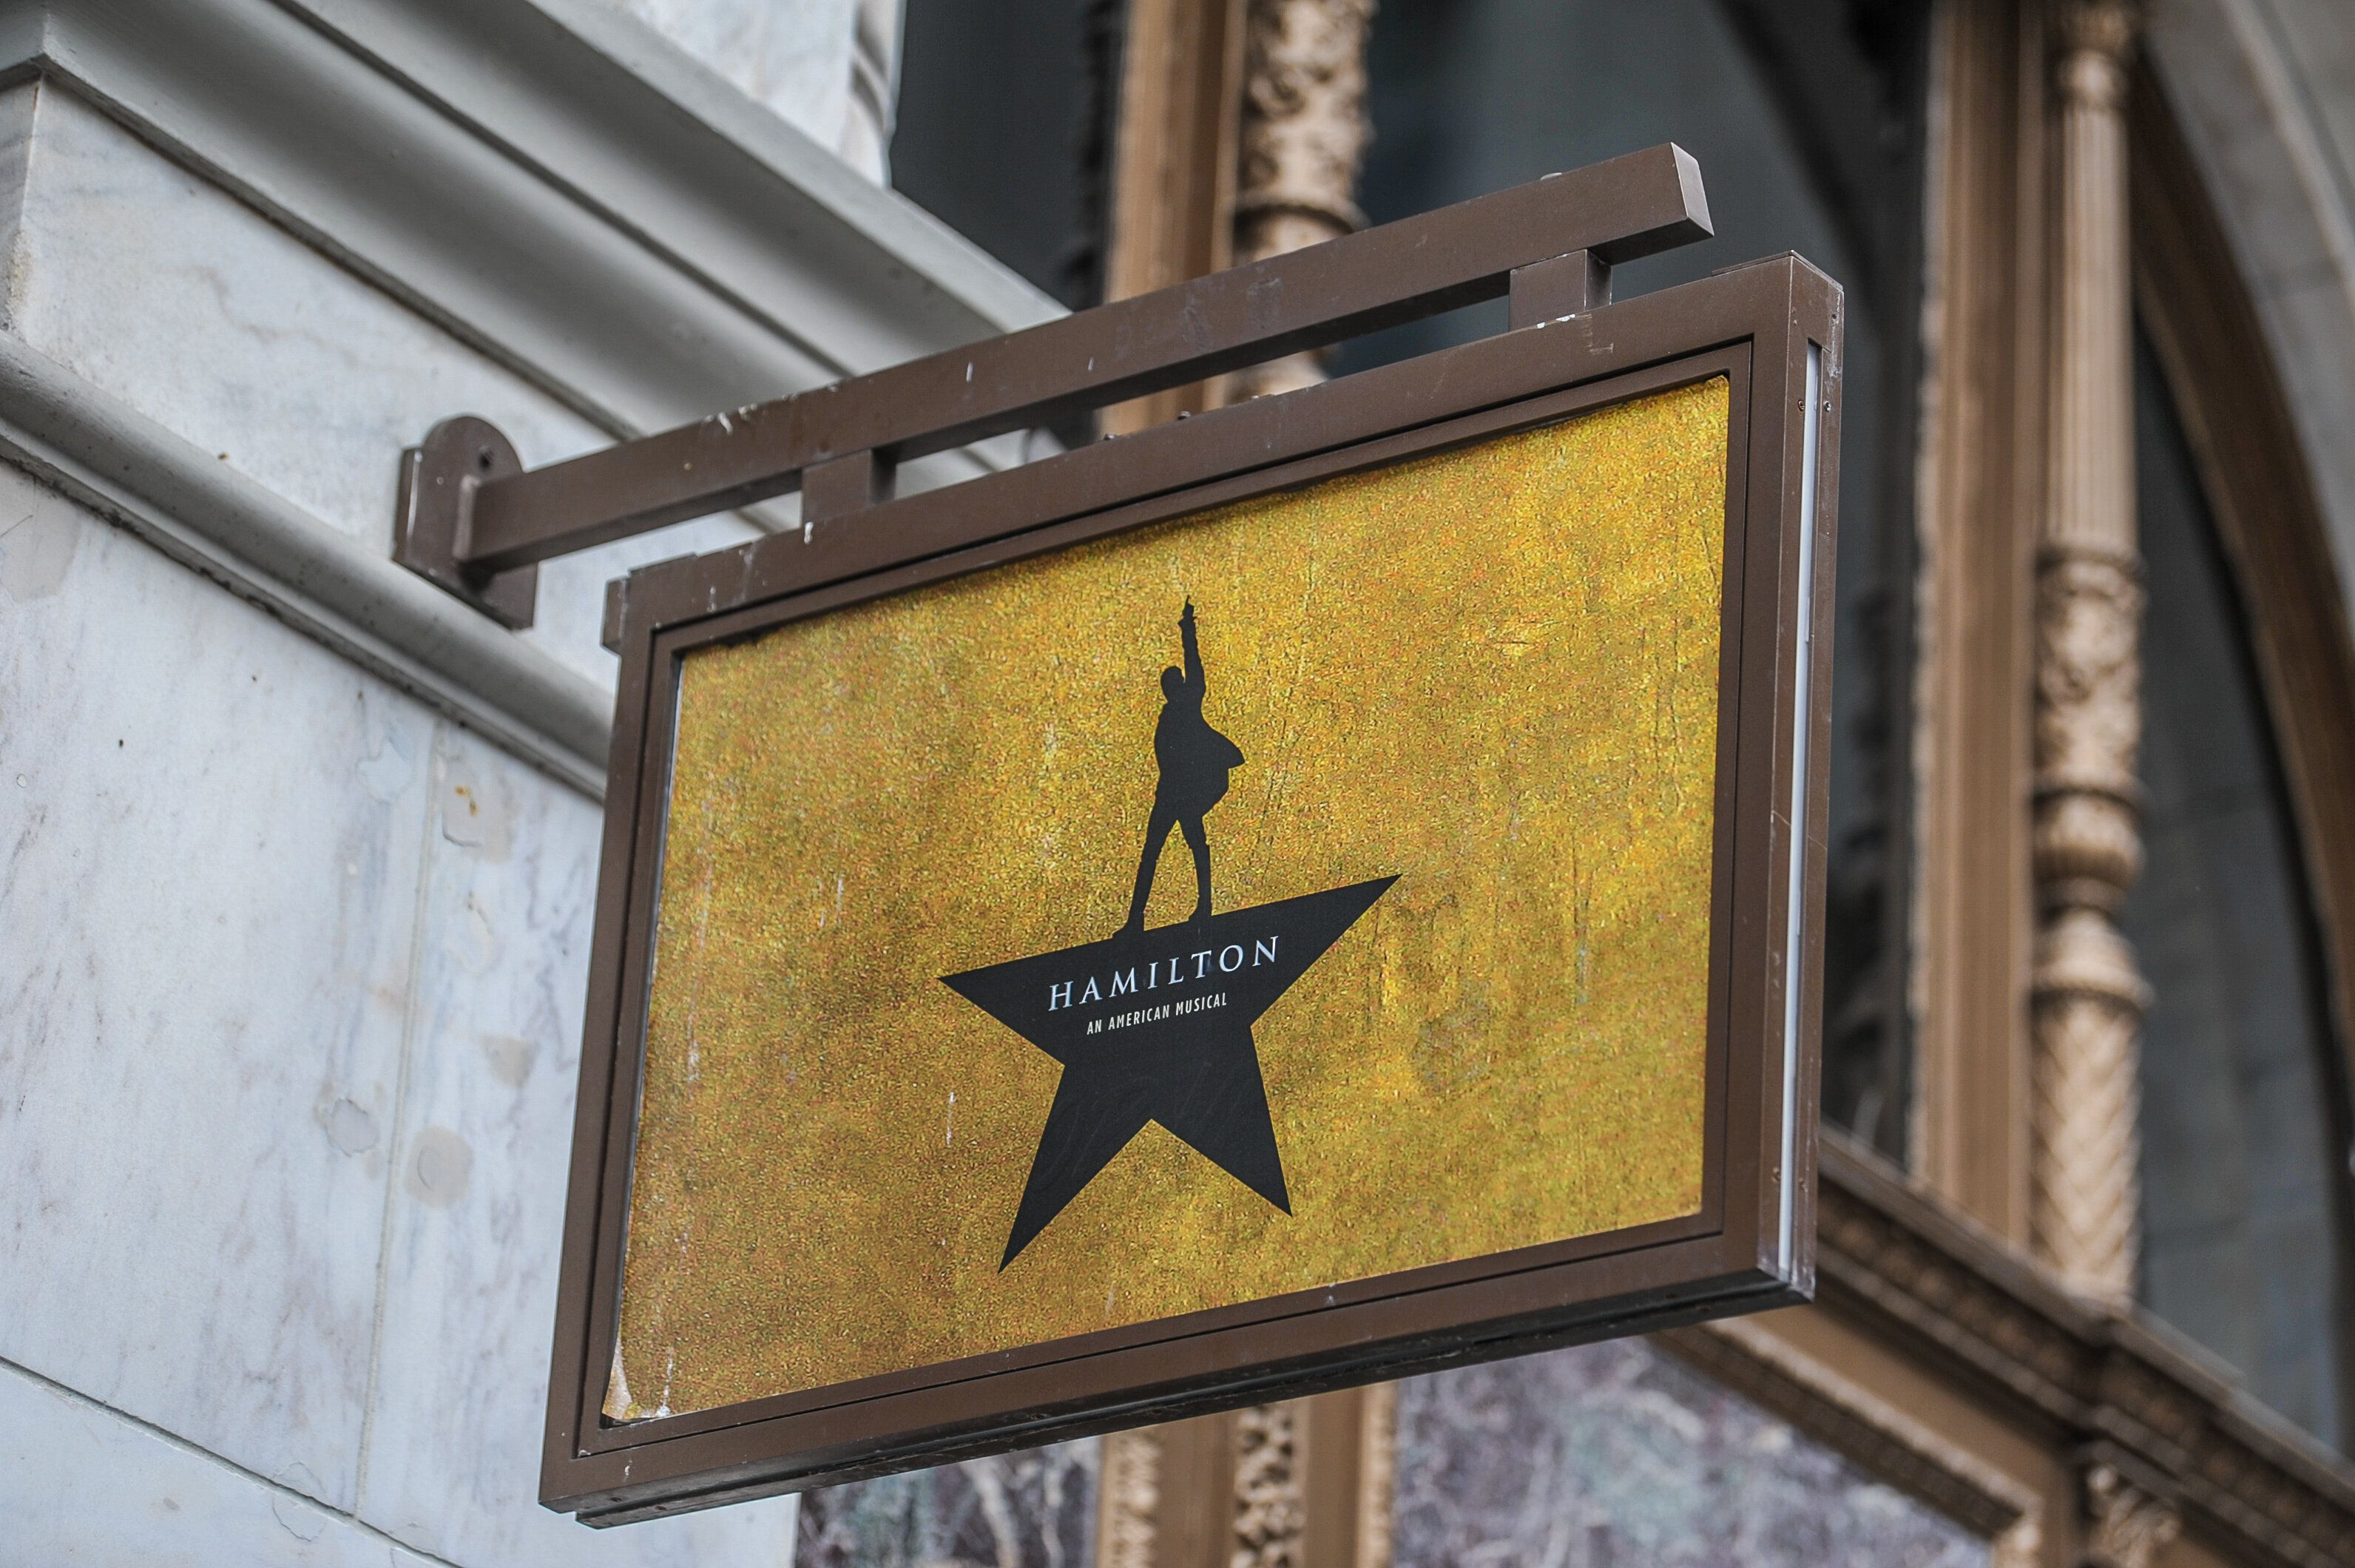 Five Years After Its Broadway Debut, Hamilton Arrives On Disney+ To A Nuanced Response